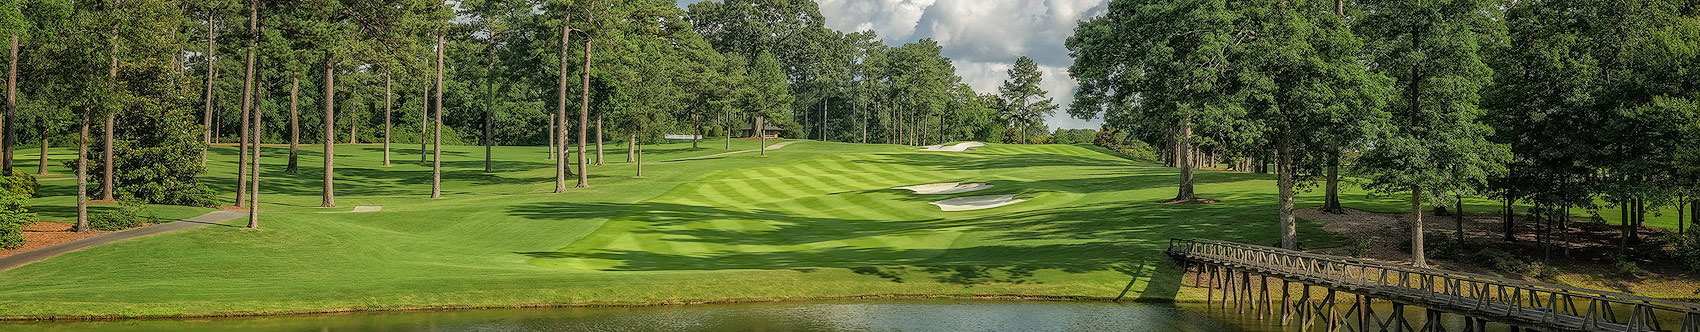 <div class='title'>           PEACHTREE GOLF CLUB, ATLANTA, GEORGIA, 9TH HOLE         </div>                 <div class='description'>           Across the lake to the fairway from the tee on Peachtree Golf Club's 9th.         </div>